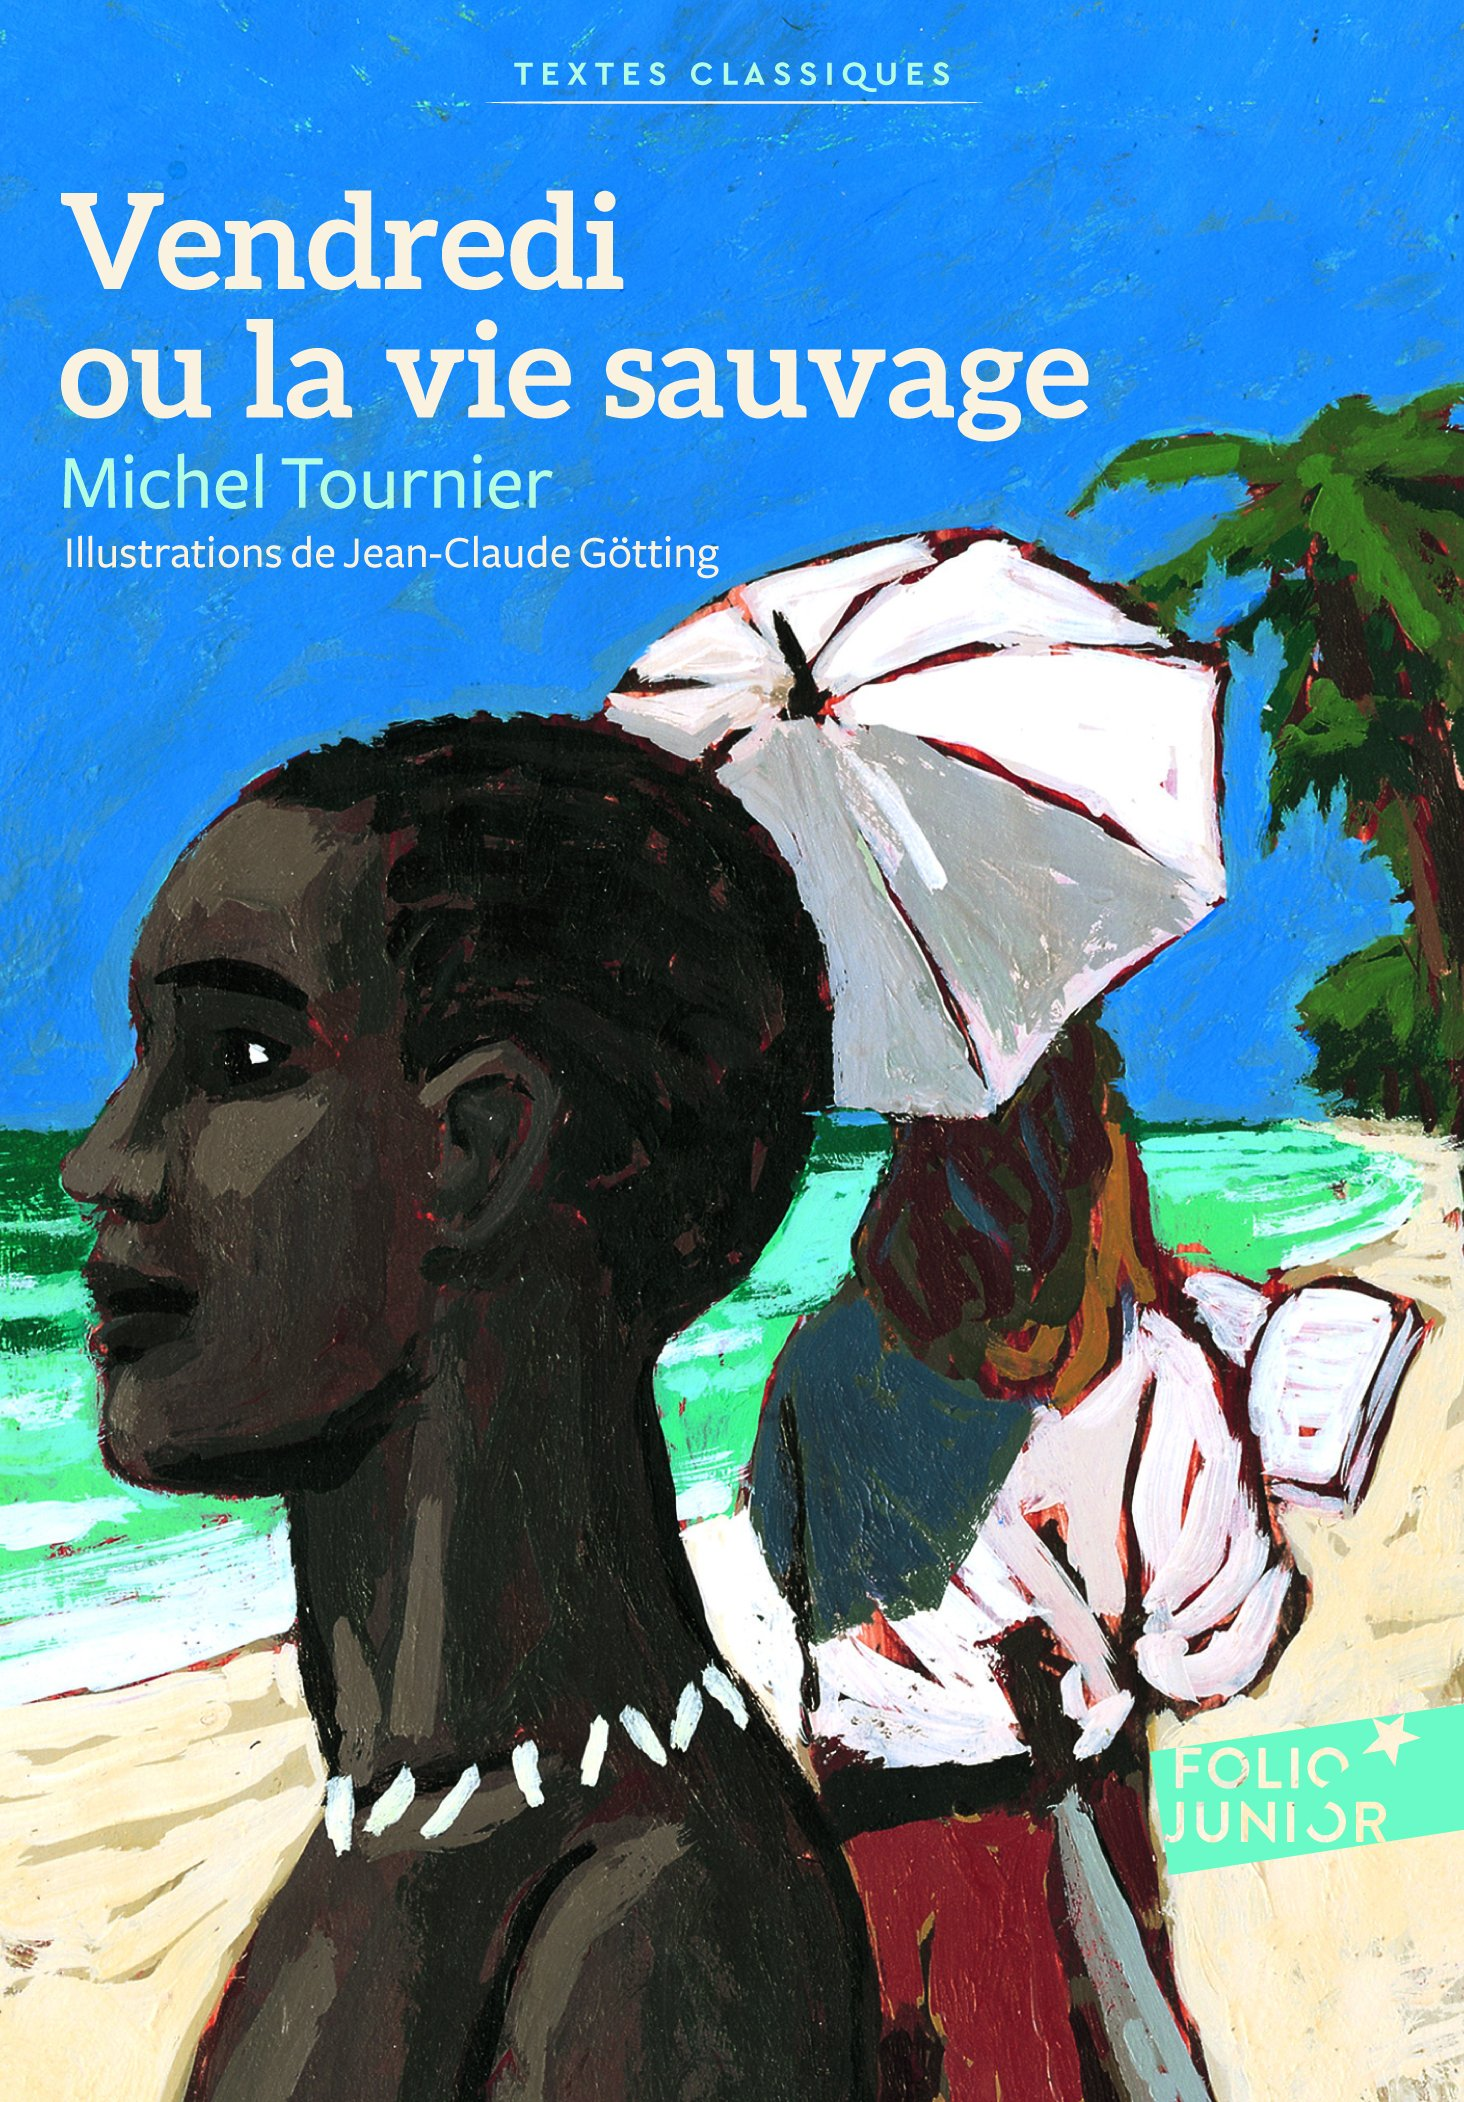 Vendredi ou la vie sauvage Poche – 2 novembre 2012 Michel Tournier Jean-Claude Götting Folio Junior 2070650642